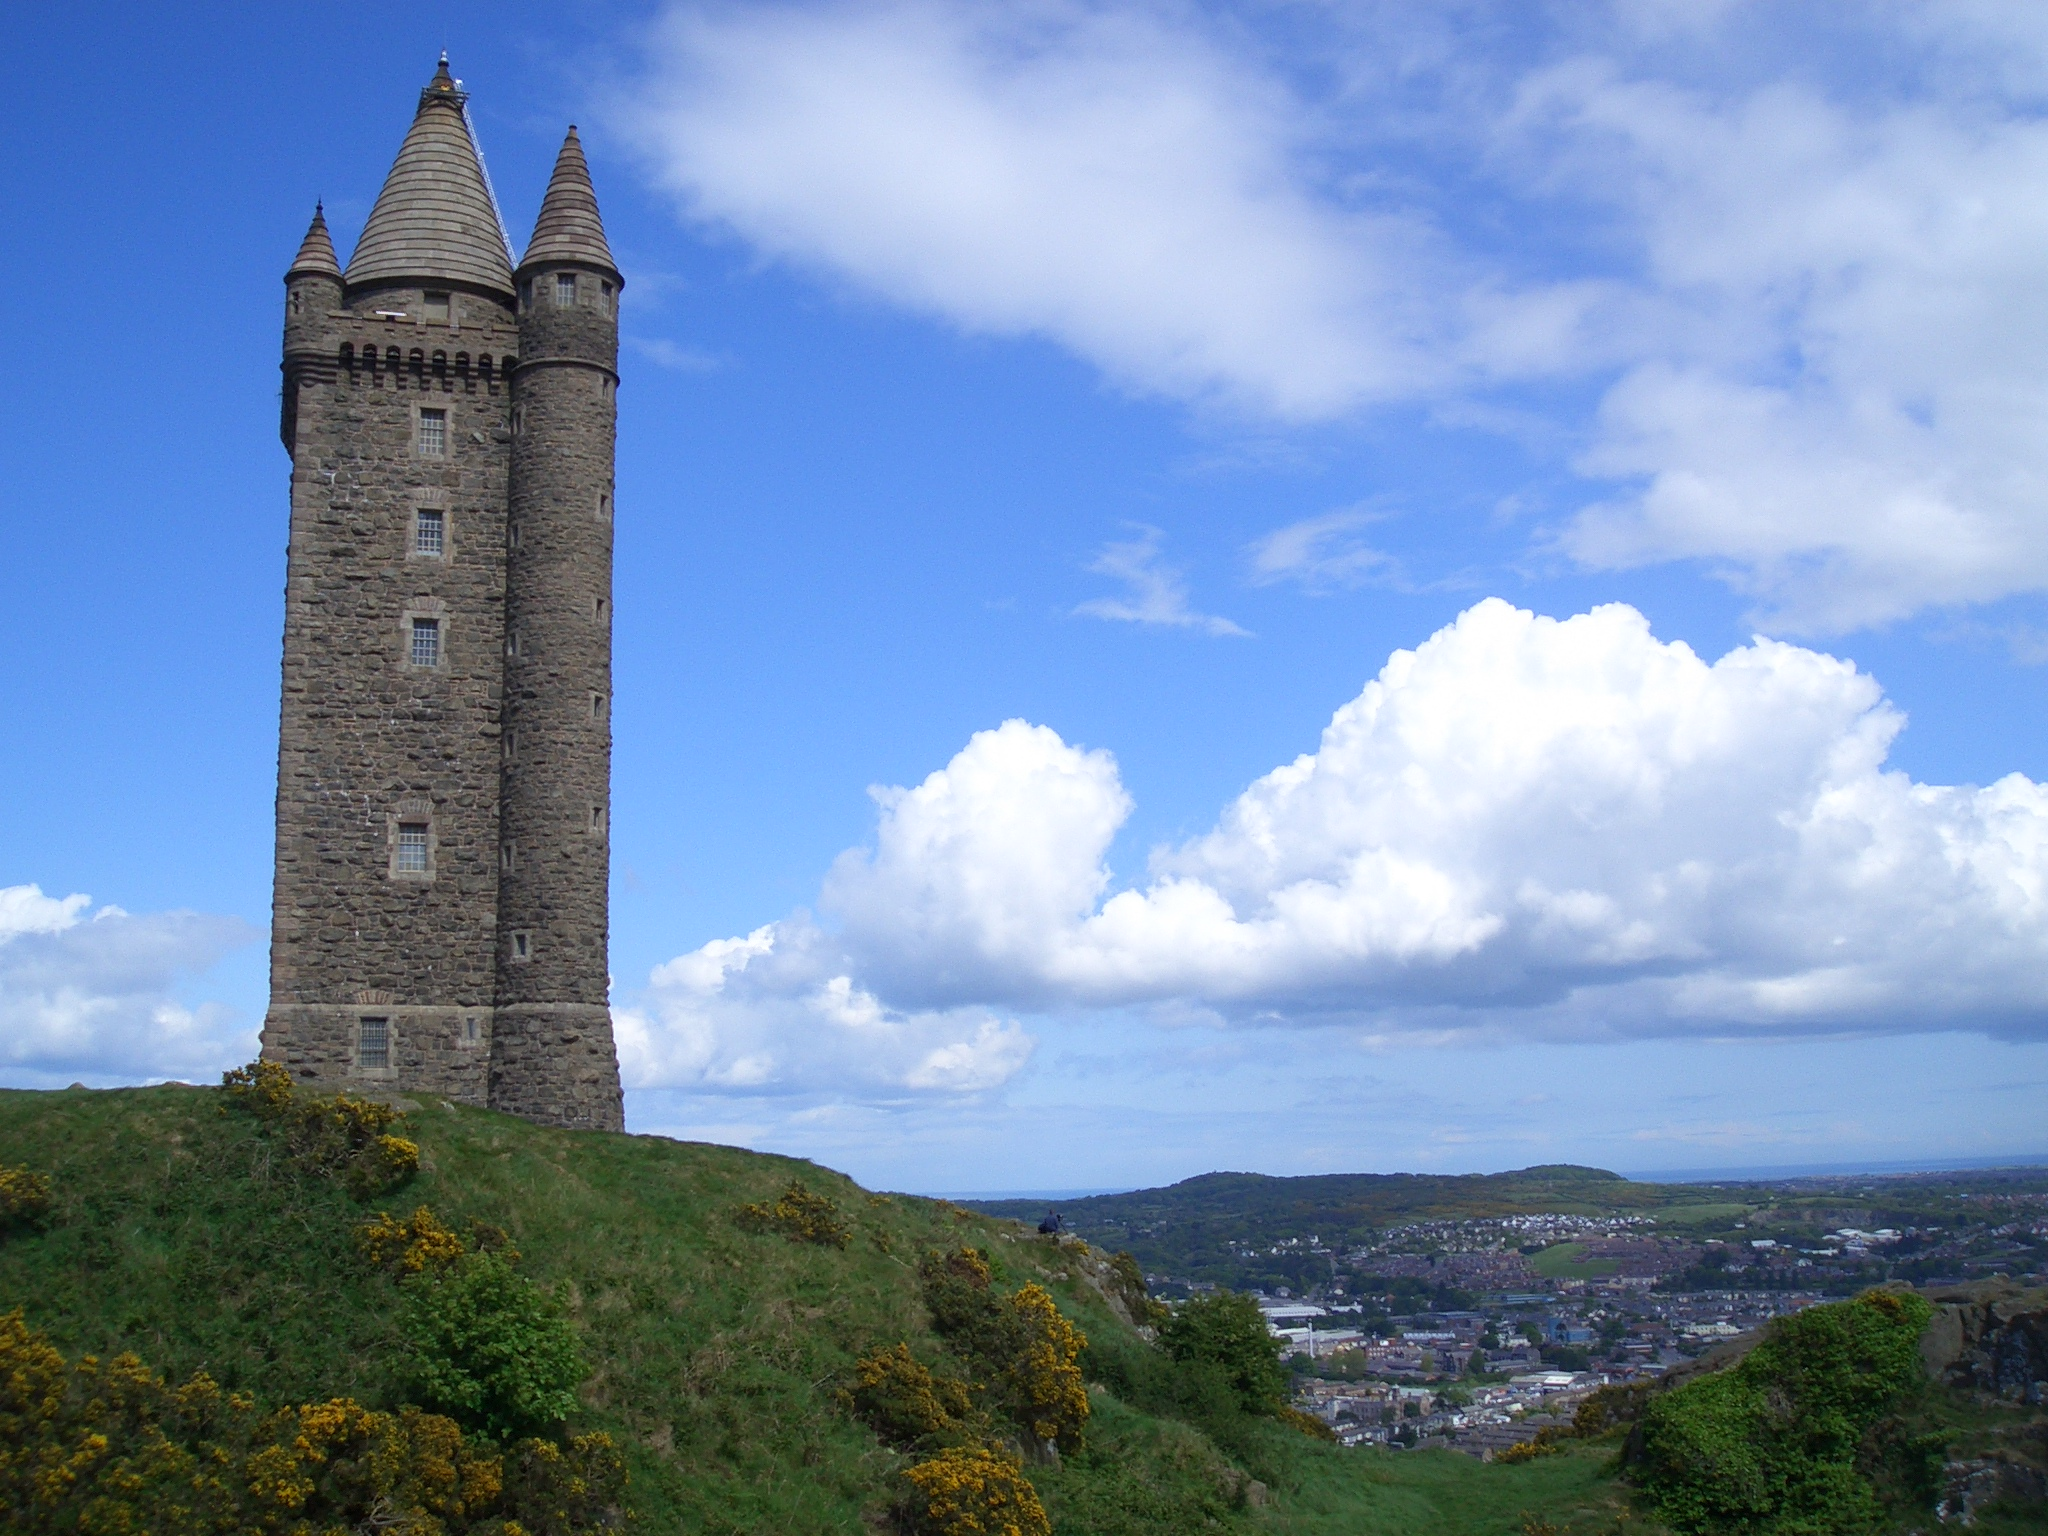 Scrabo Tower is one of the top tourist attractions in Newtownards